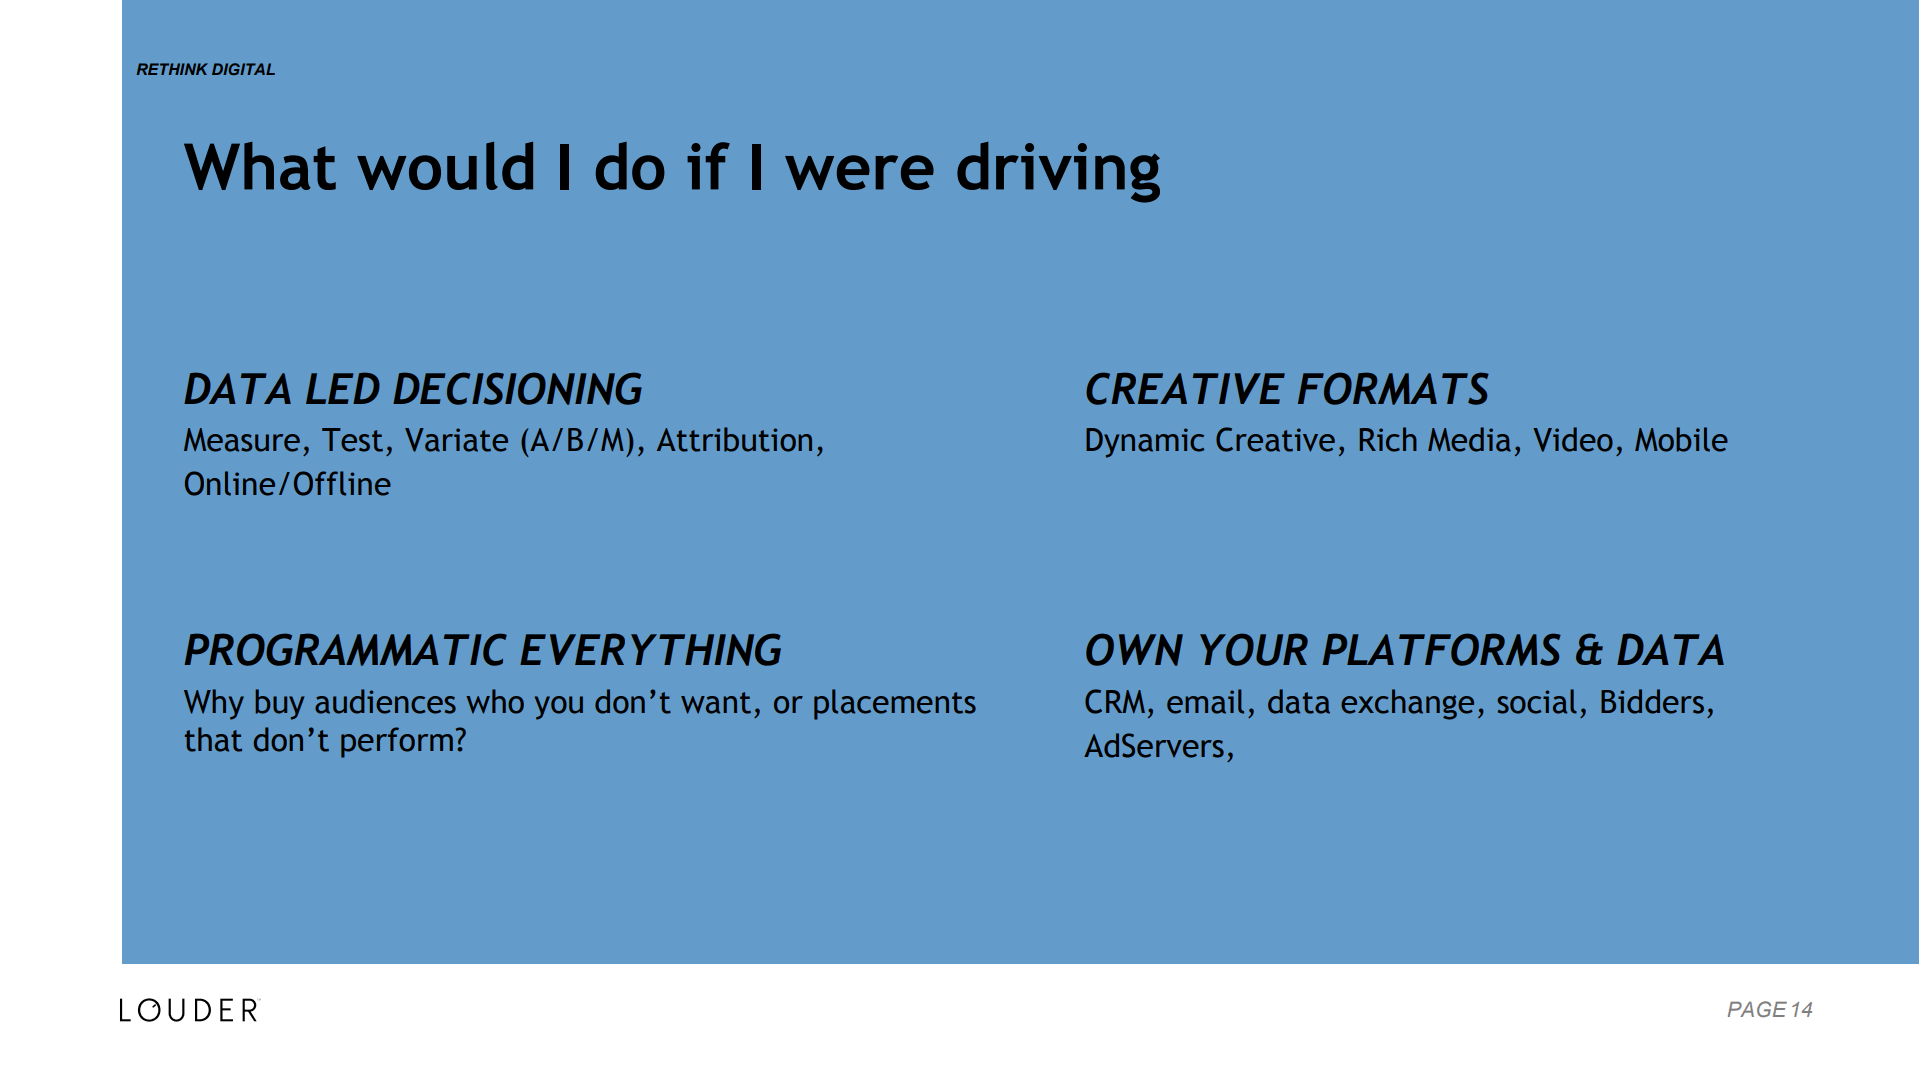 What would I do if I was driving?